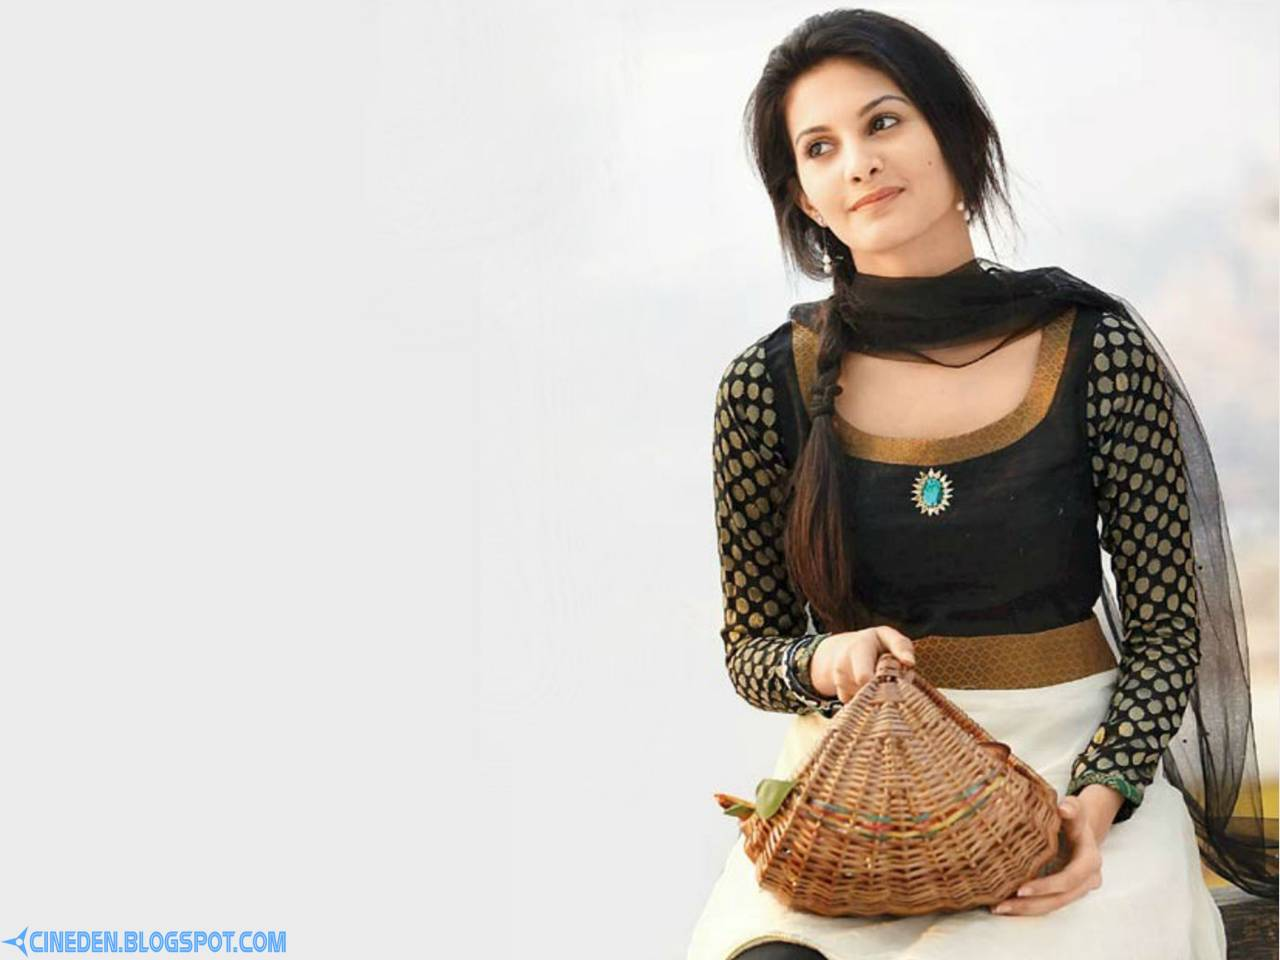 I always knew I'd be in Bollywood: Amyra Dastur - CineDen